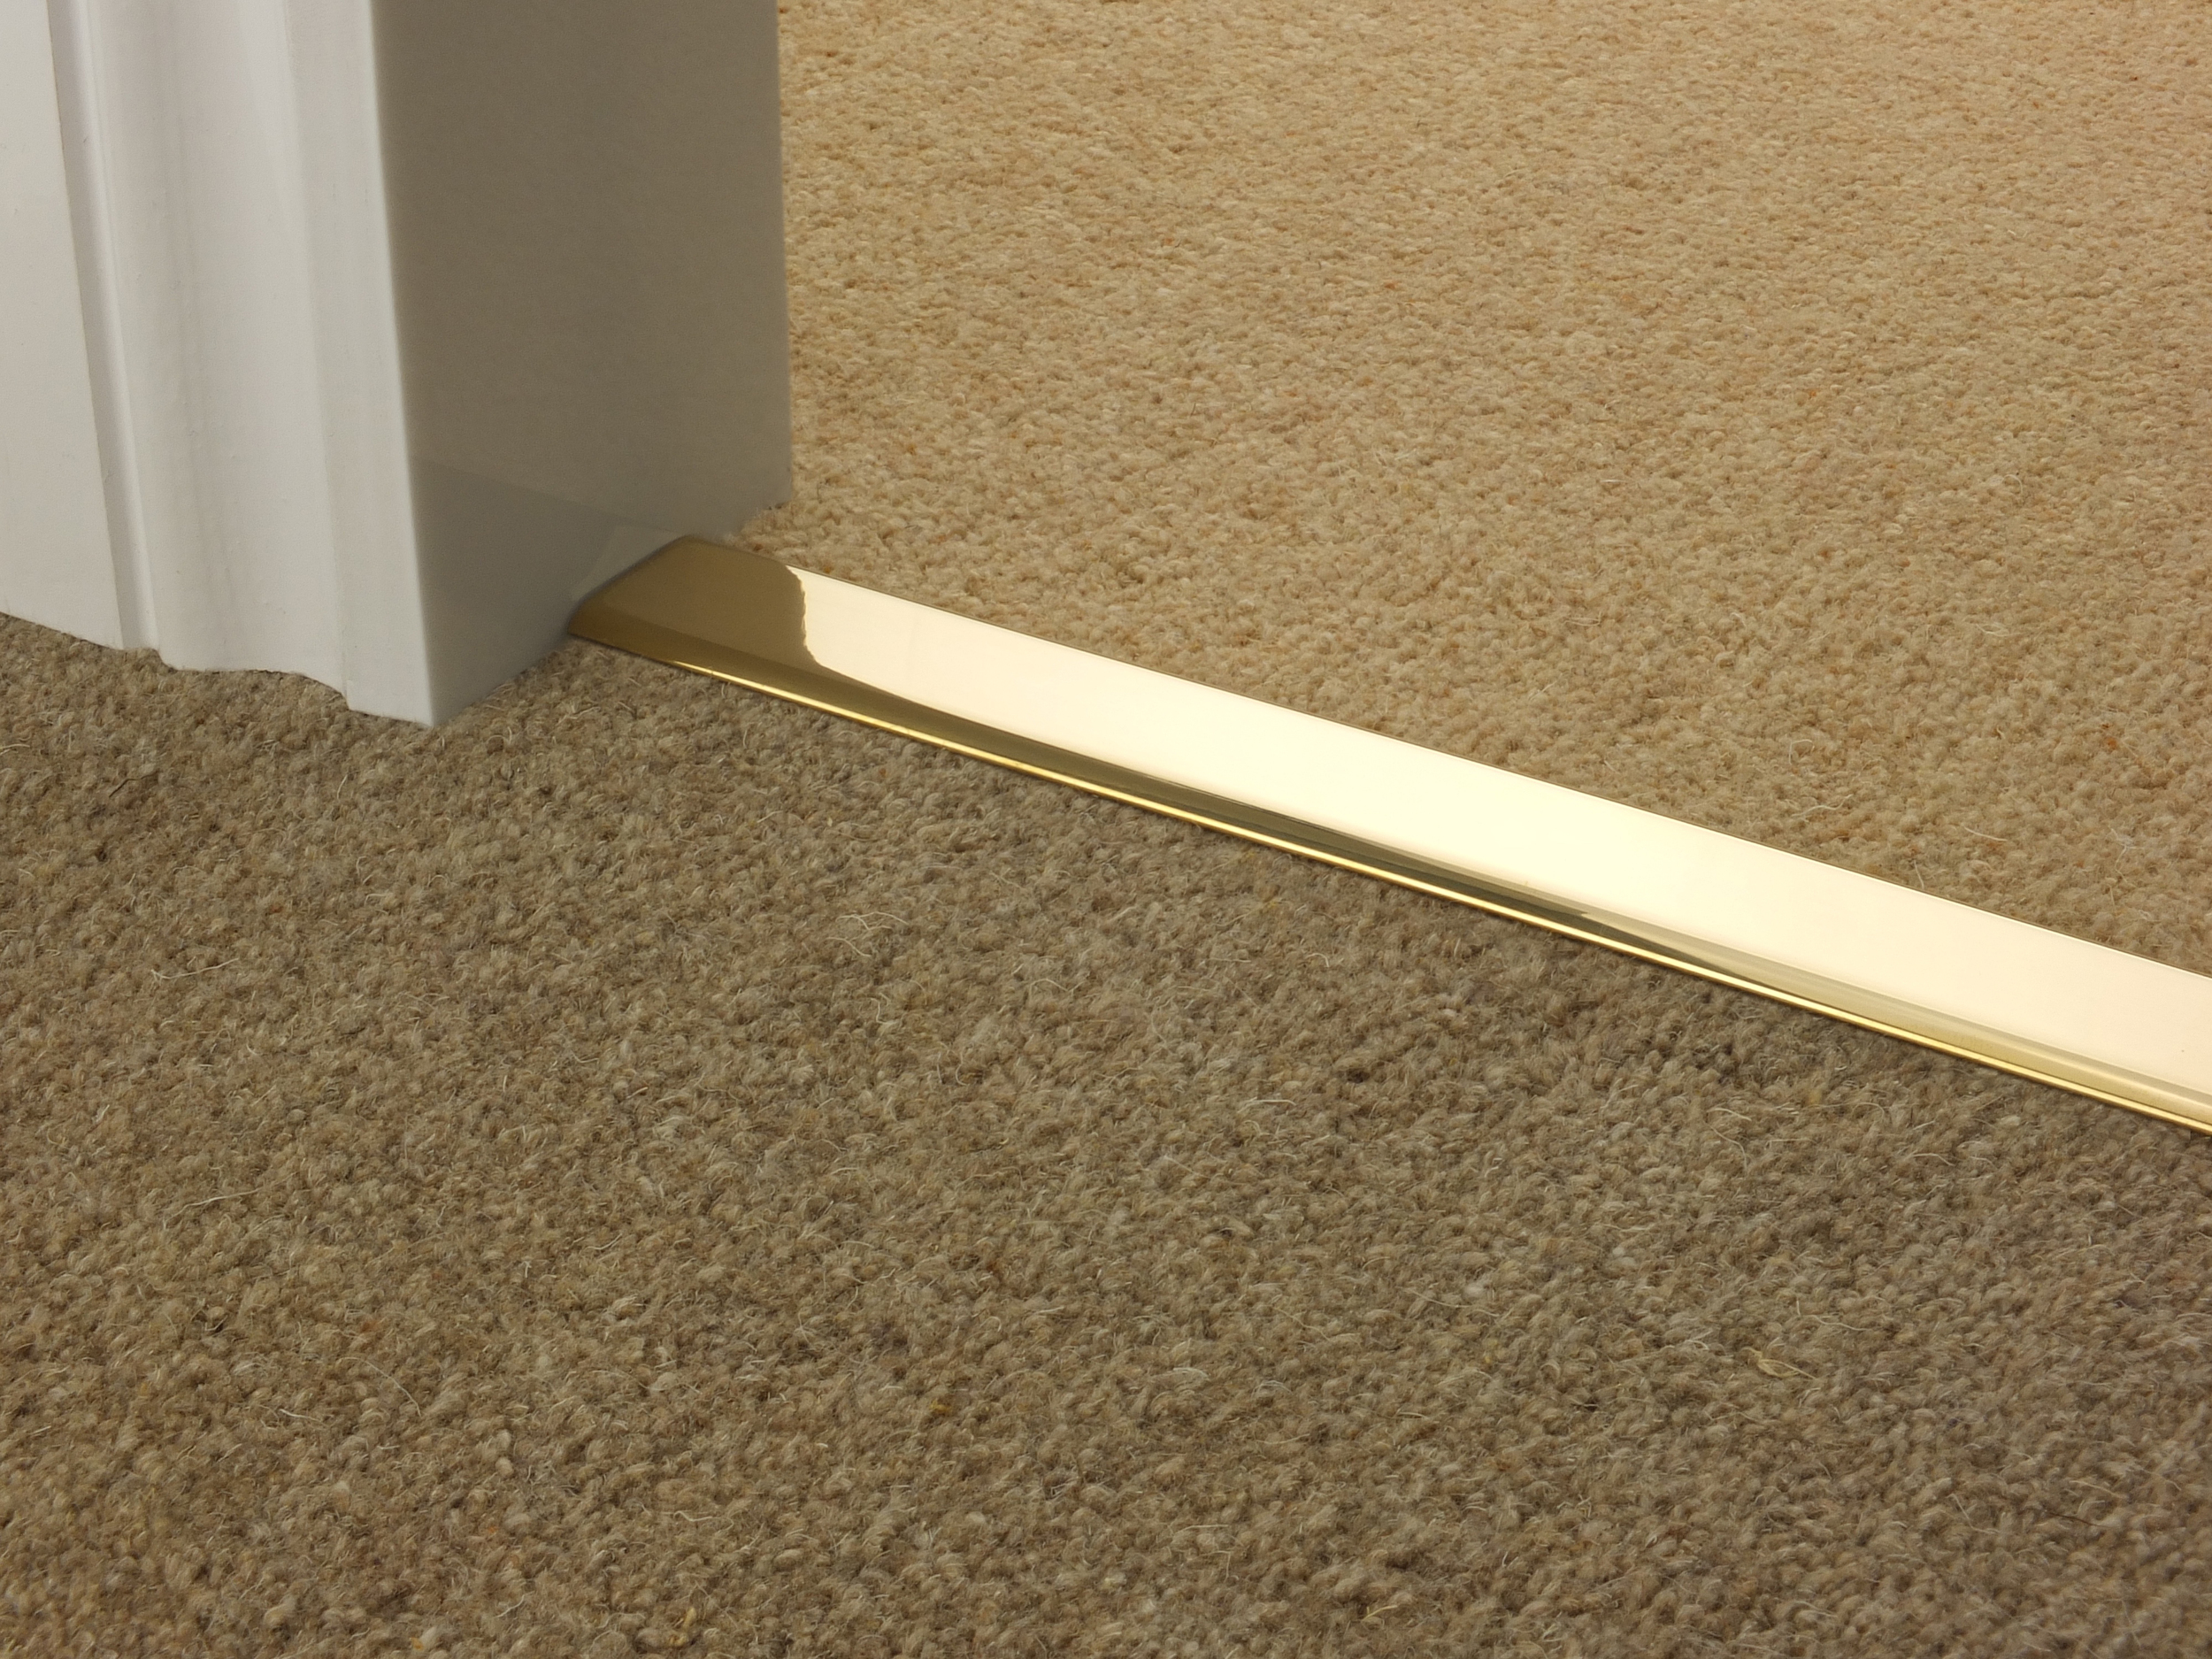 door_bar_brass_doublez_carpet_carpet.jpg